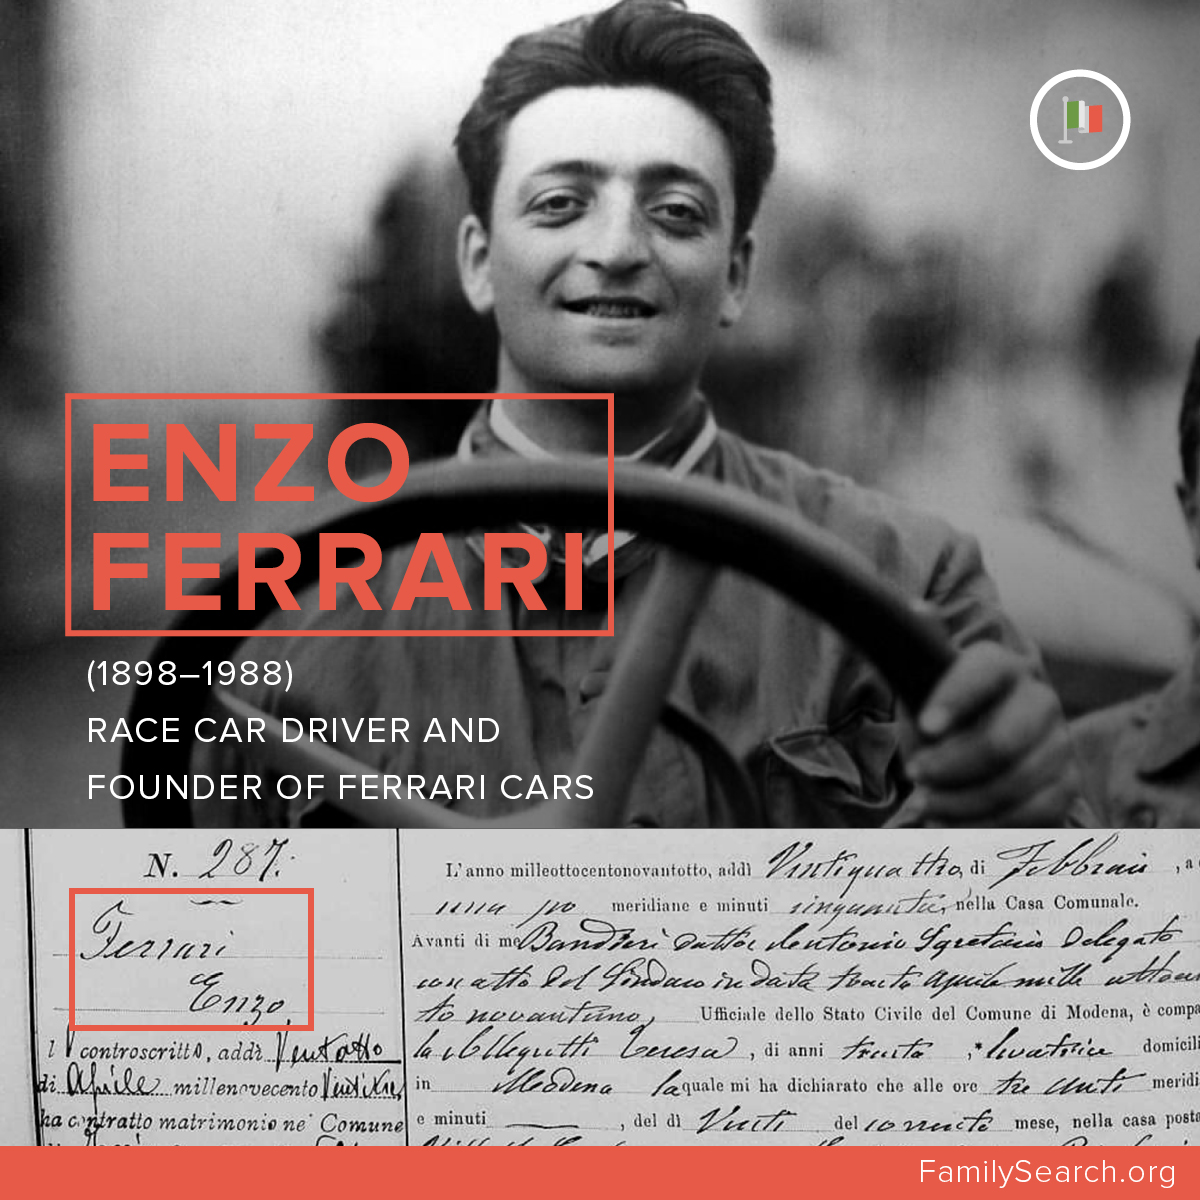 Enzo Ferrari, founder of the Ferrari sports car.